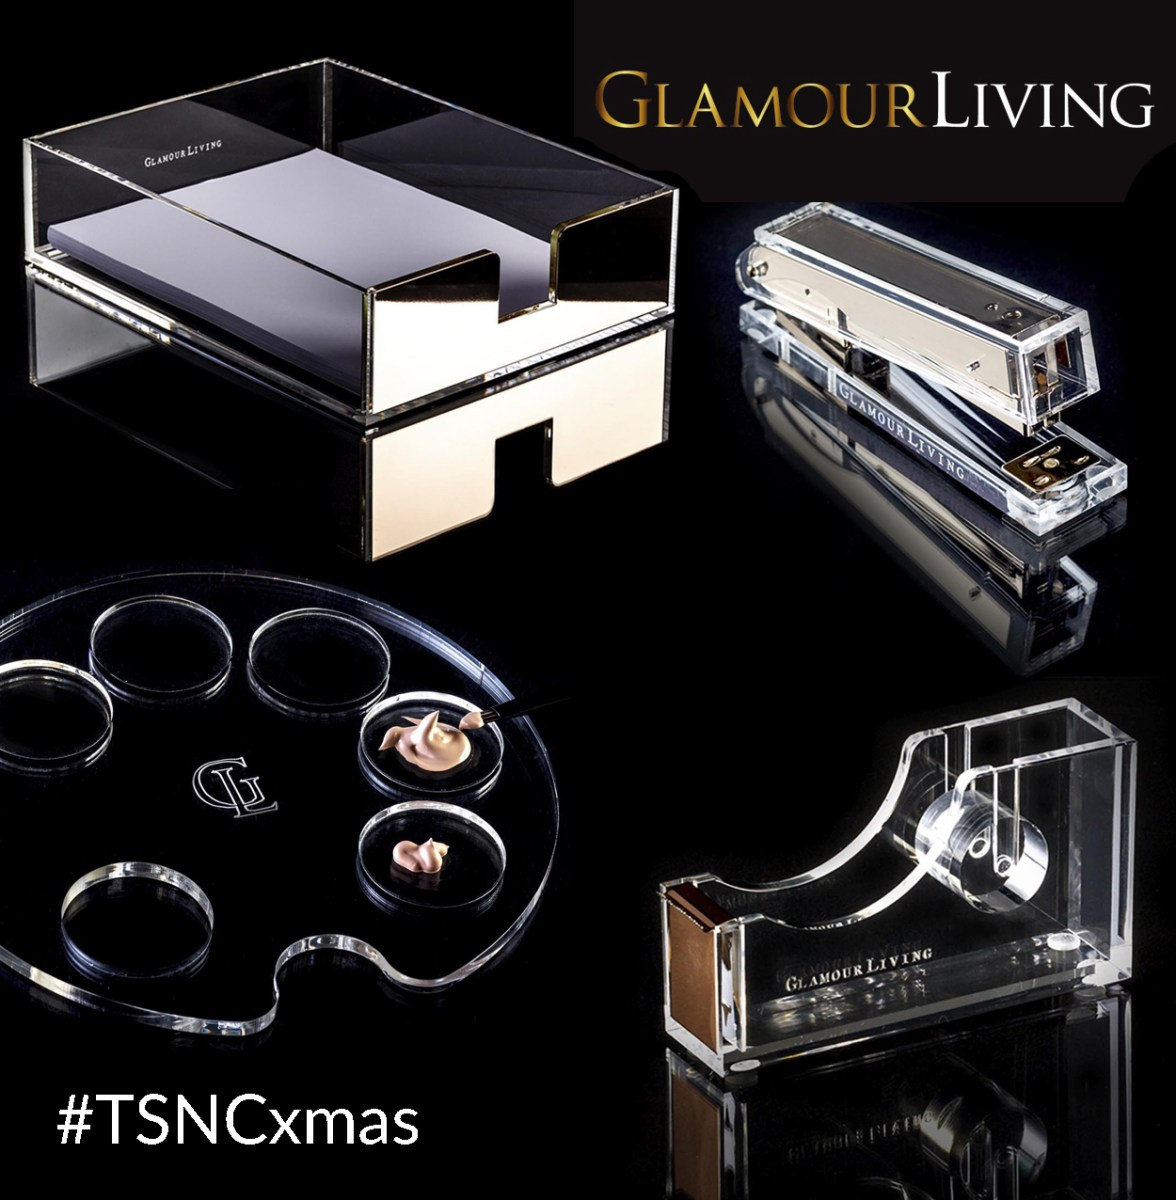 TSNC Advent Giveaway: Glamourliving Bundle! #TSNCxmas